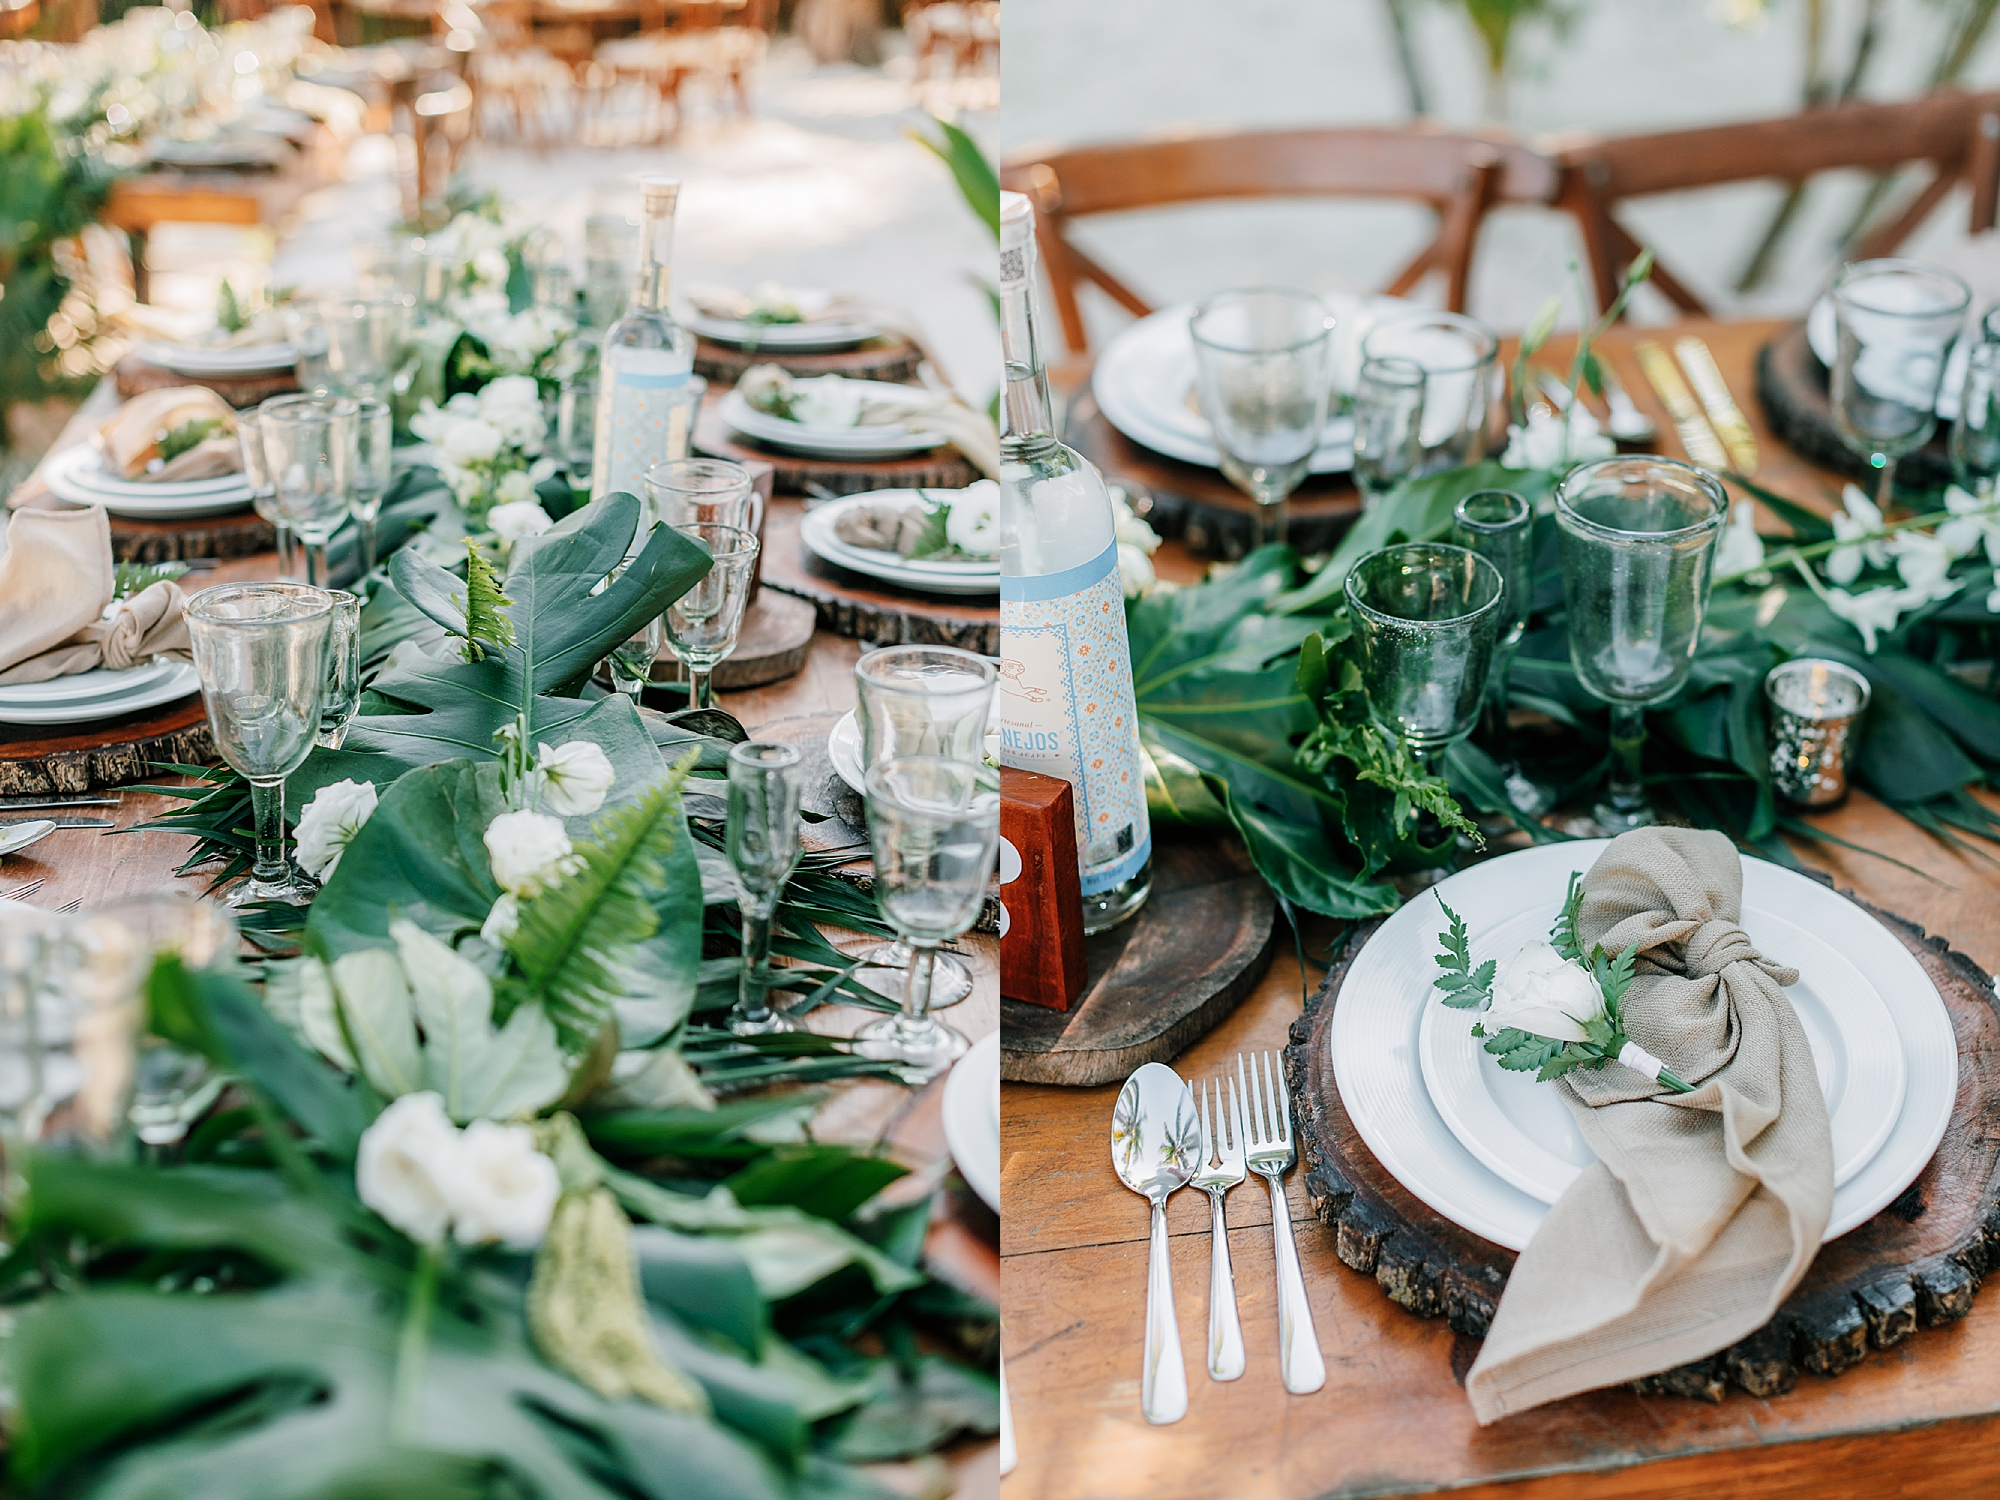 Stylish and Candid Destination Film Wedding Photography in Tulum Mexico by Magdalena Studios 0030